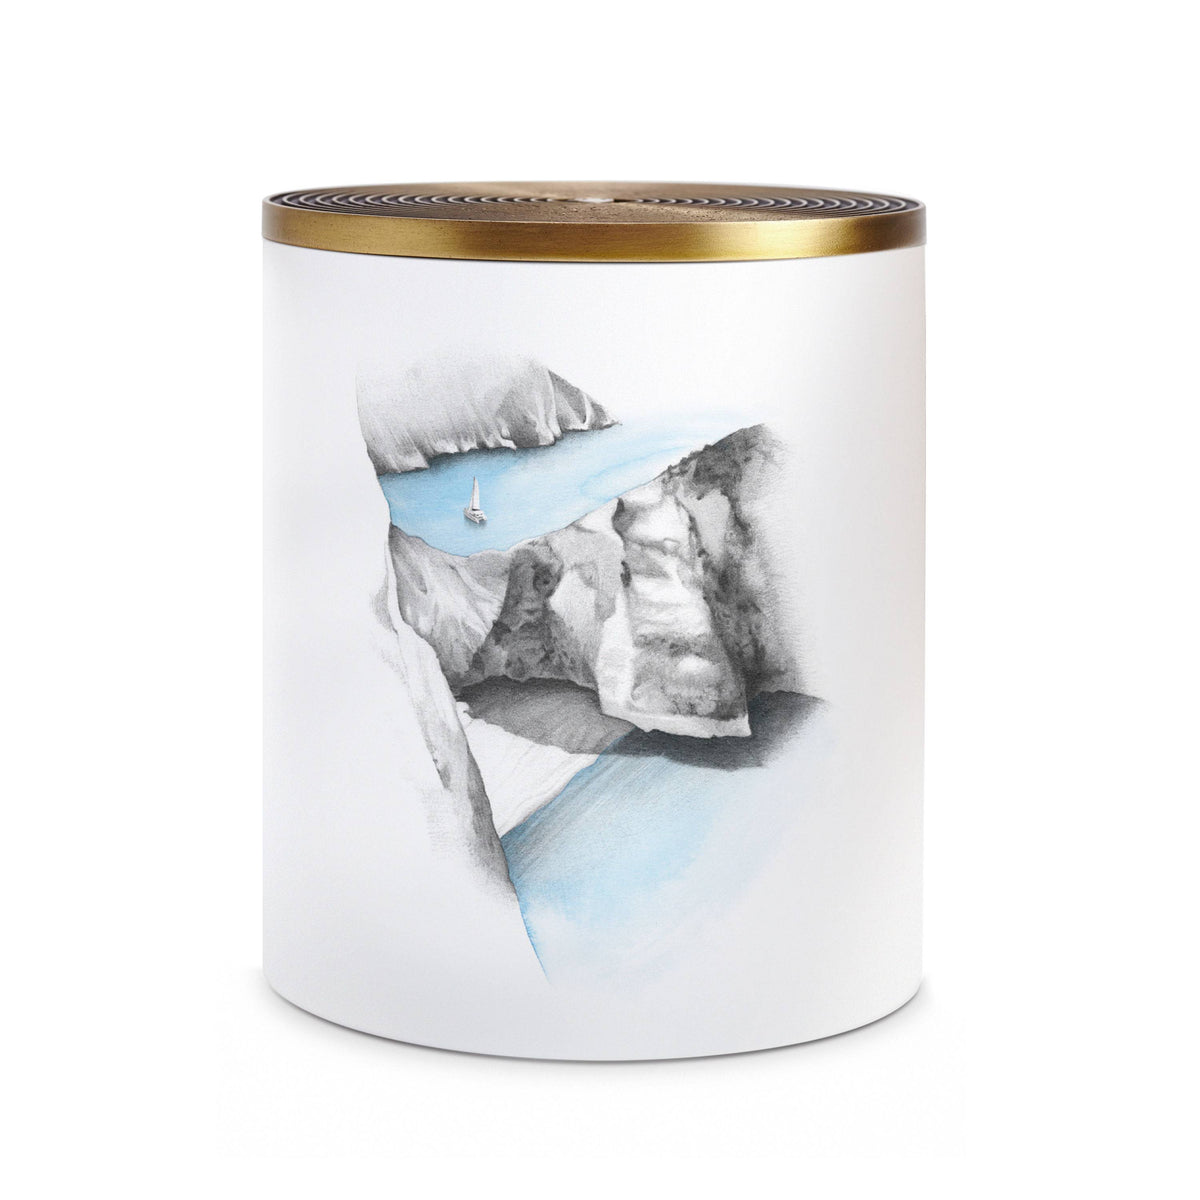 #3 Eau d'Egee Candle - Large 3-wick